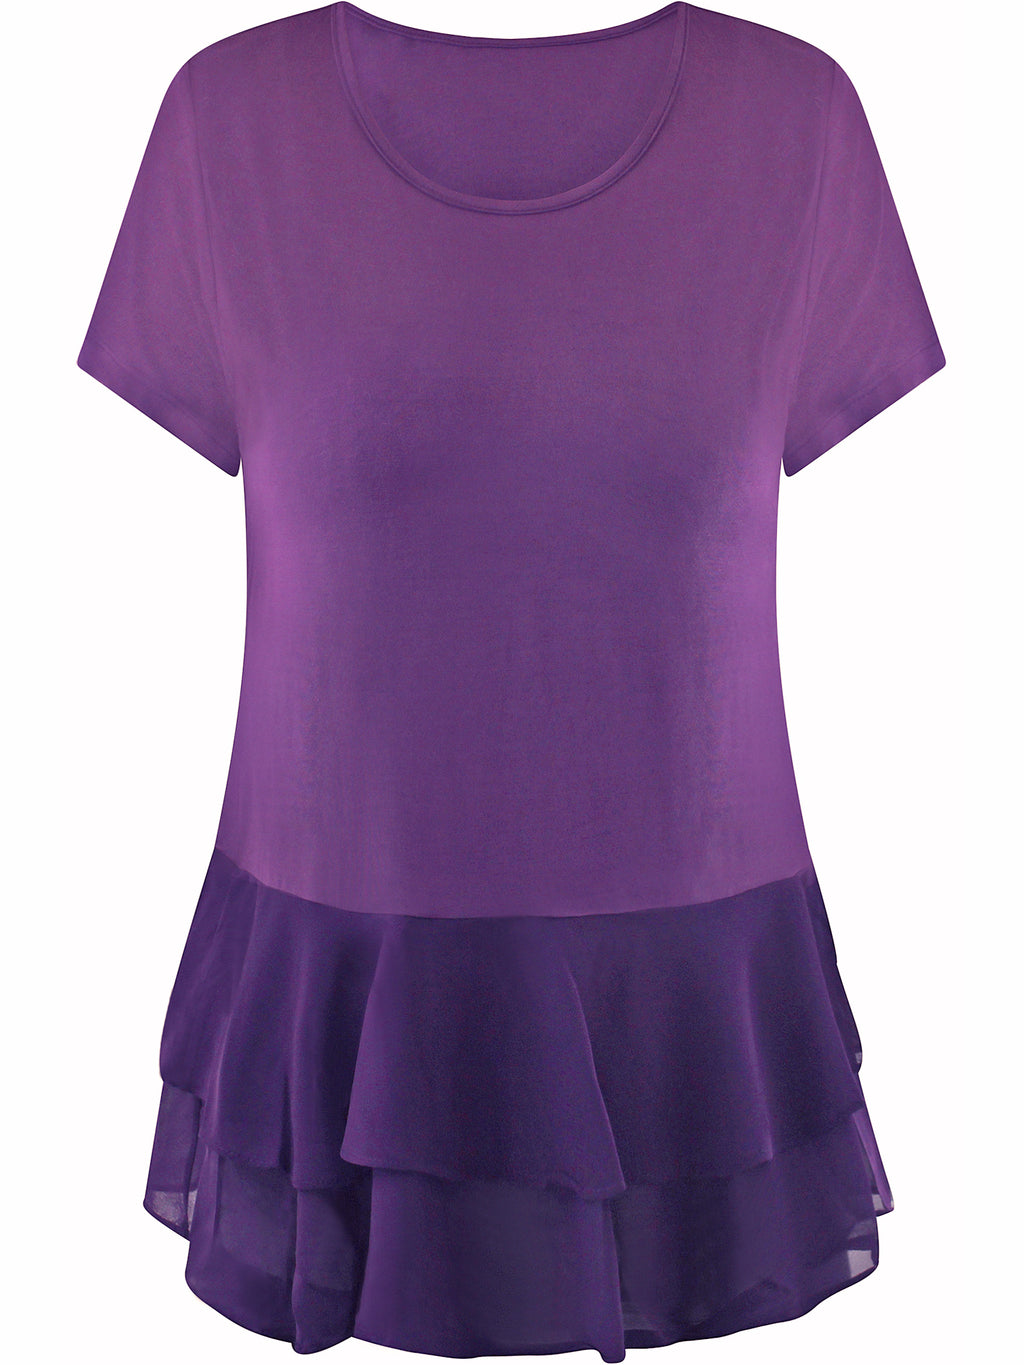 Short Sleeve Chiffon Top With Ruffle